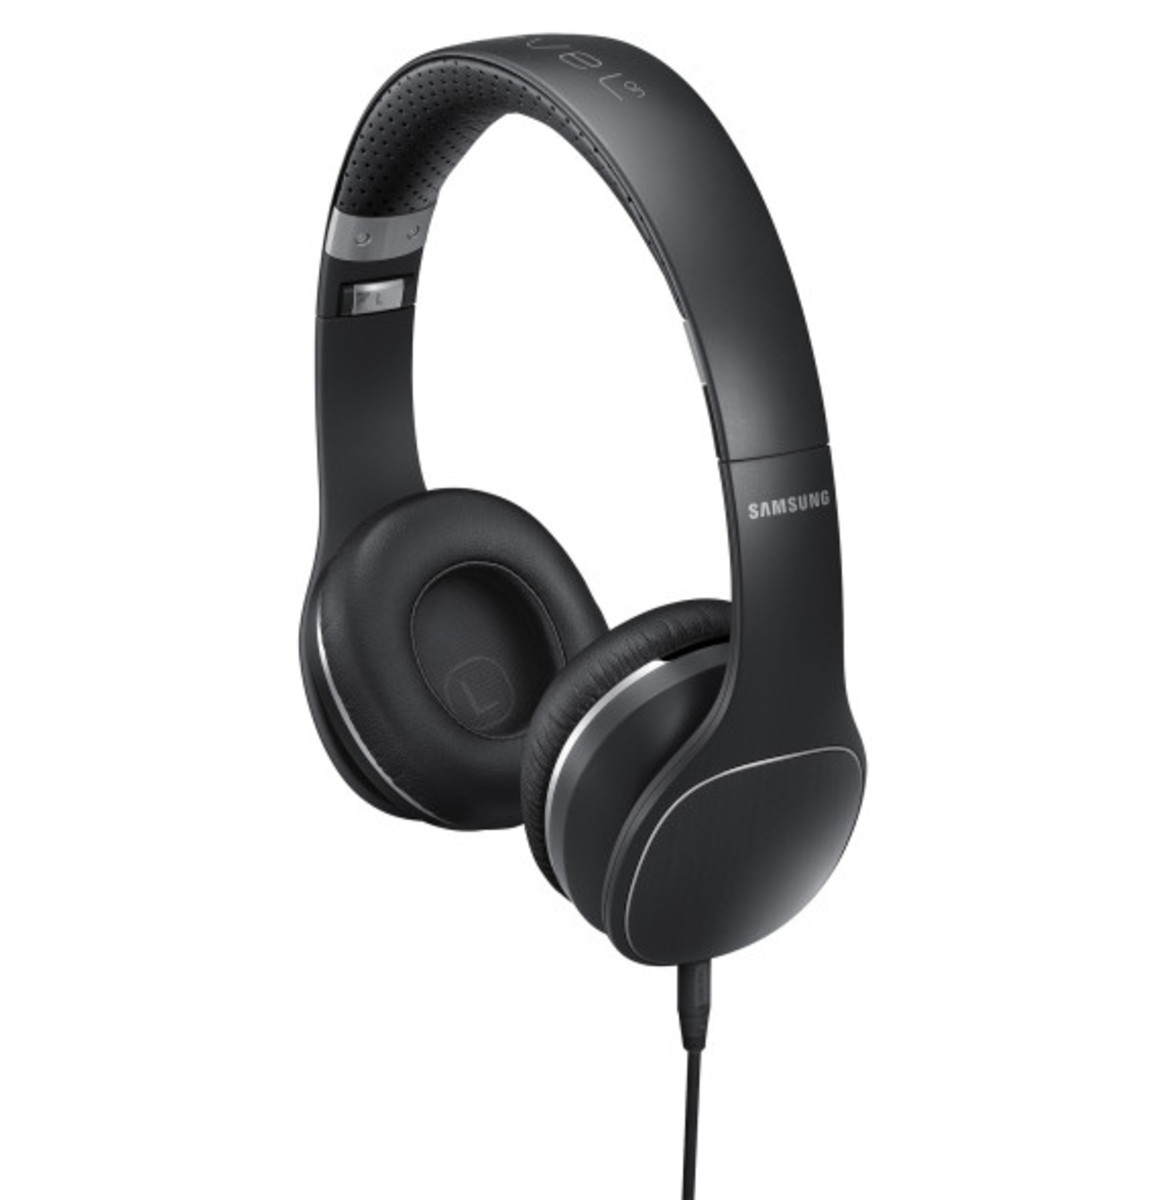 samsung-premium-mobile-audio-line-08